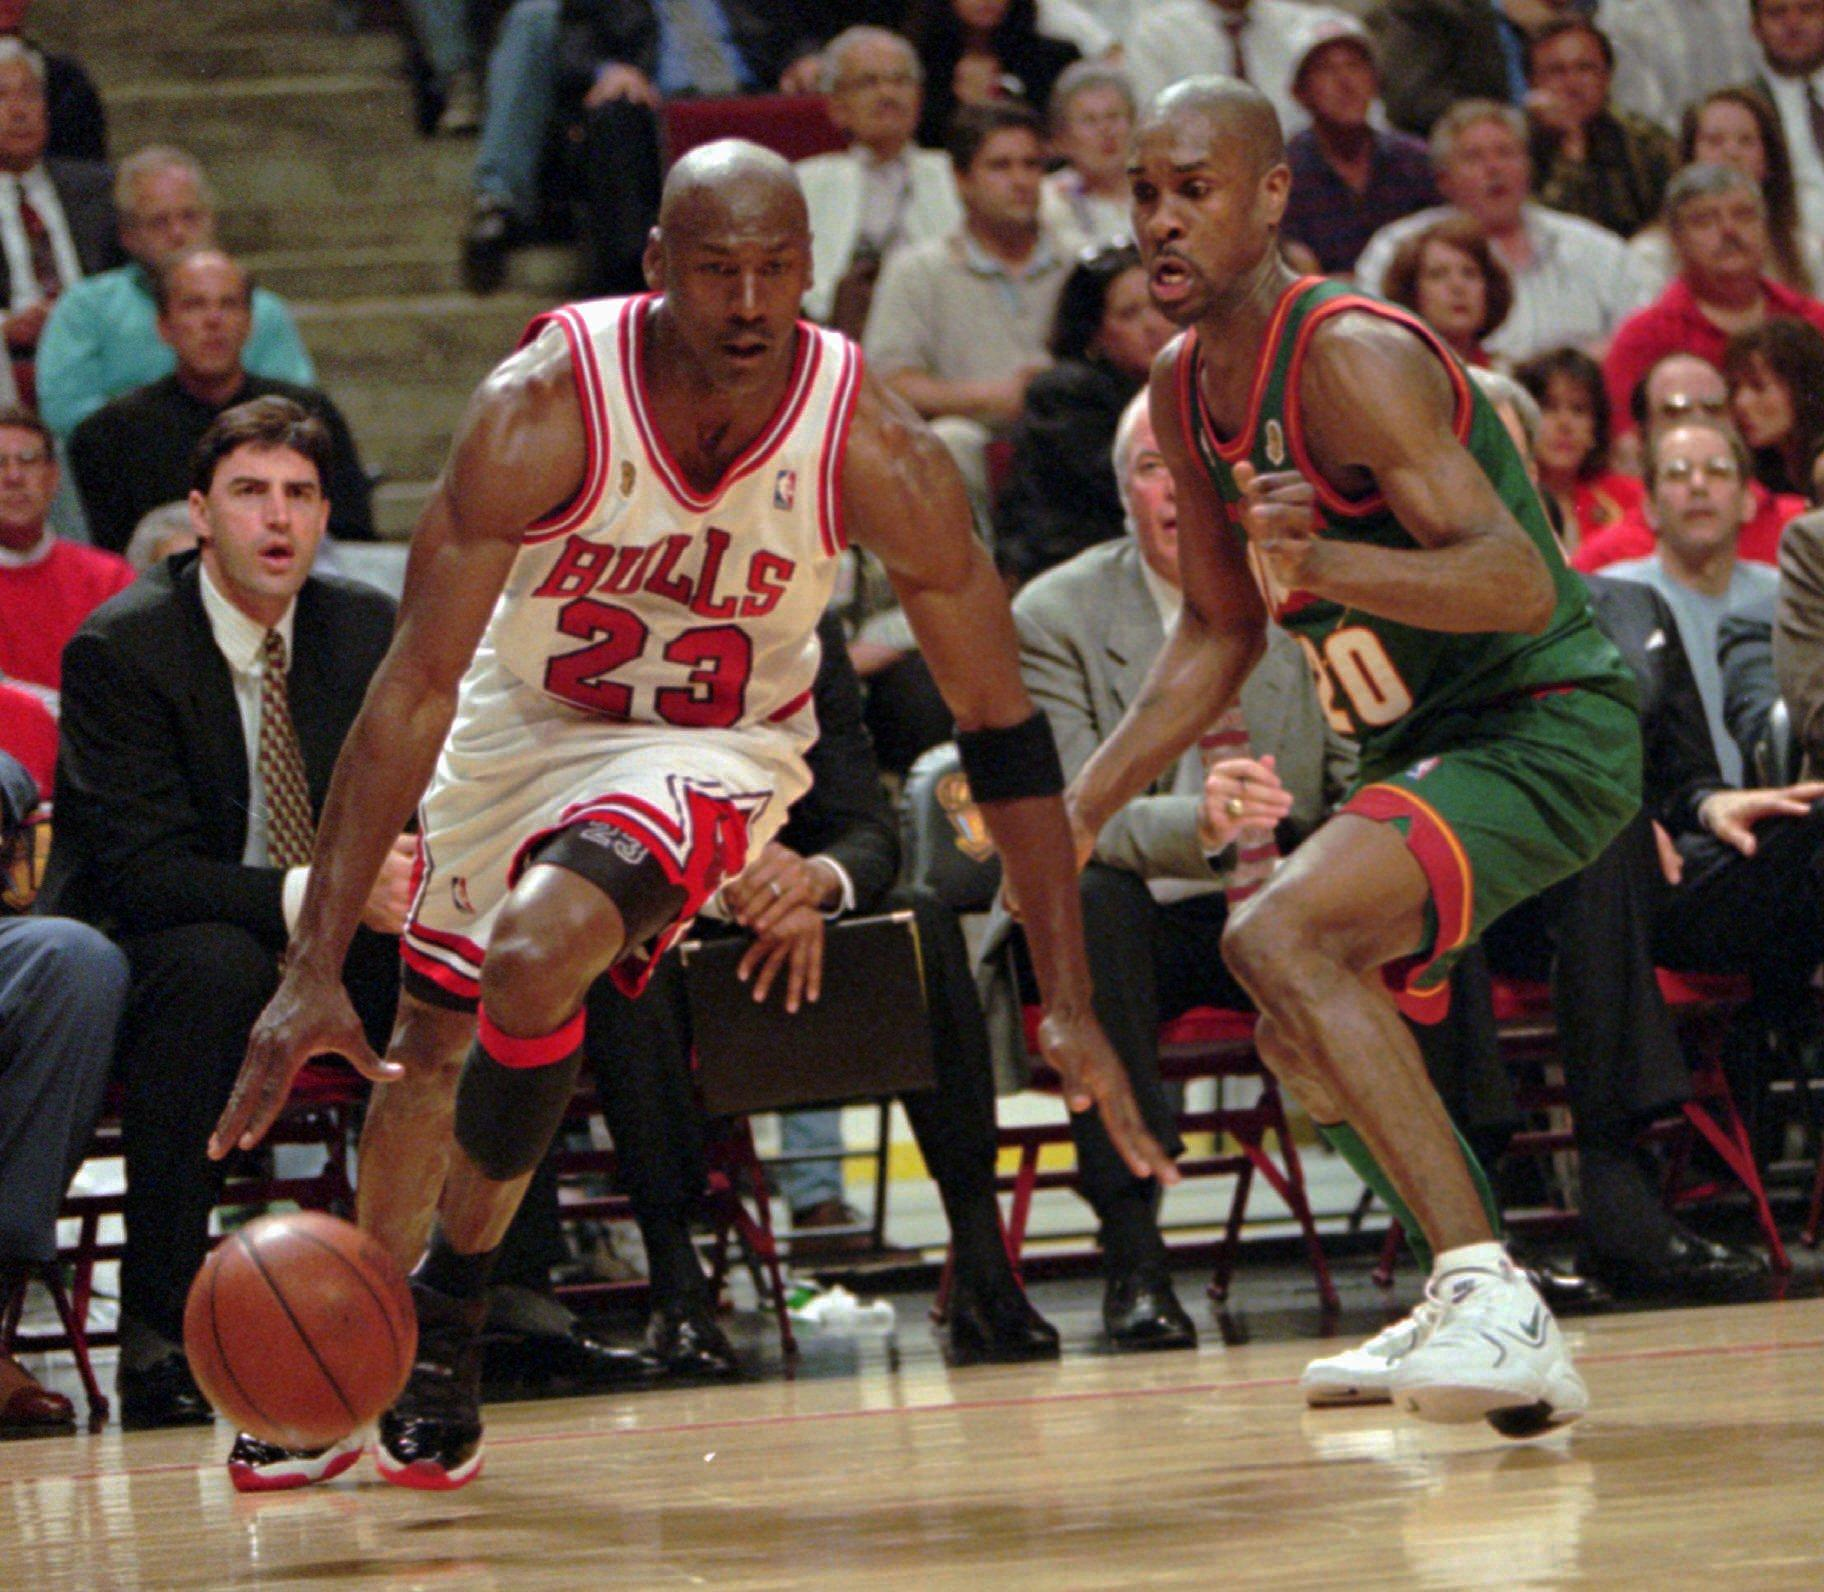 Commentary: Whatever Michael Jordan may have claimed, Gary Payton gave him  fits in 1996 NBA Finals | The Spokesman-Review